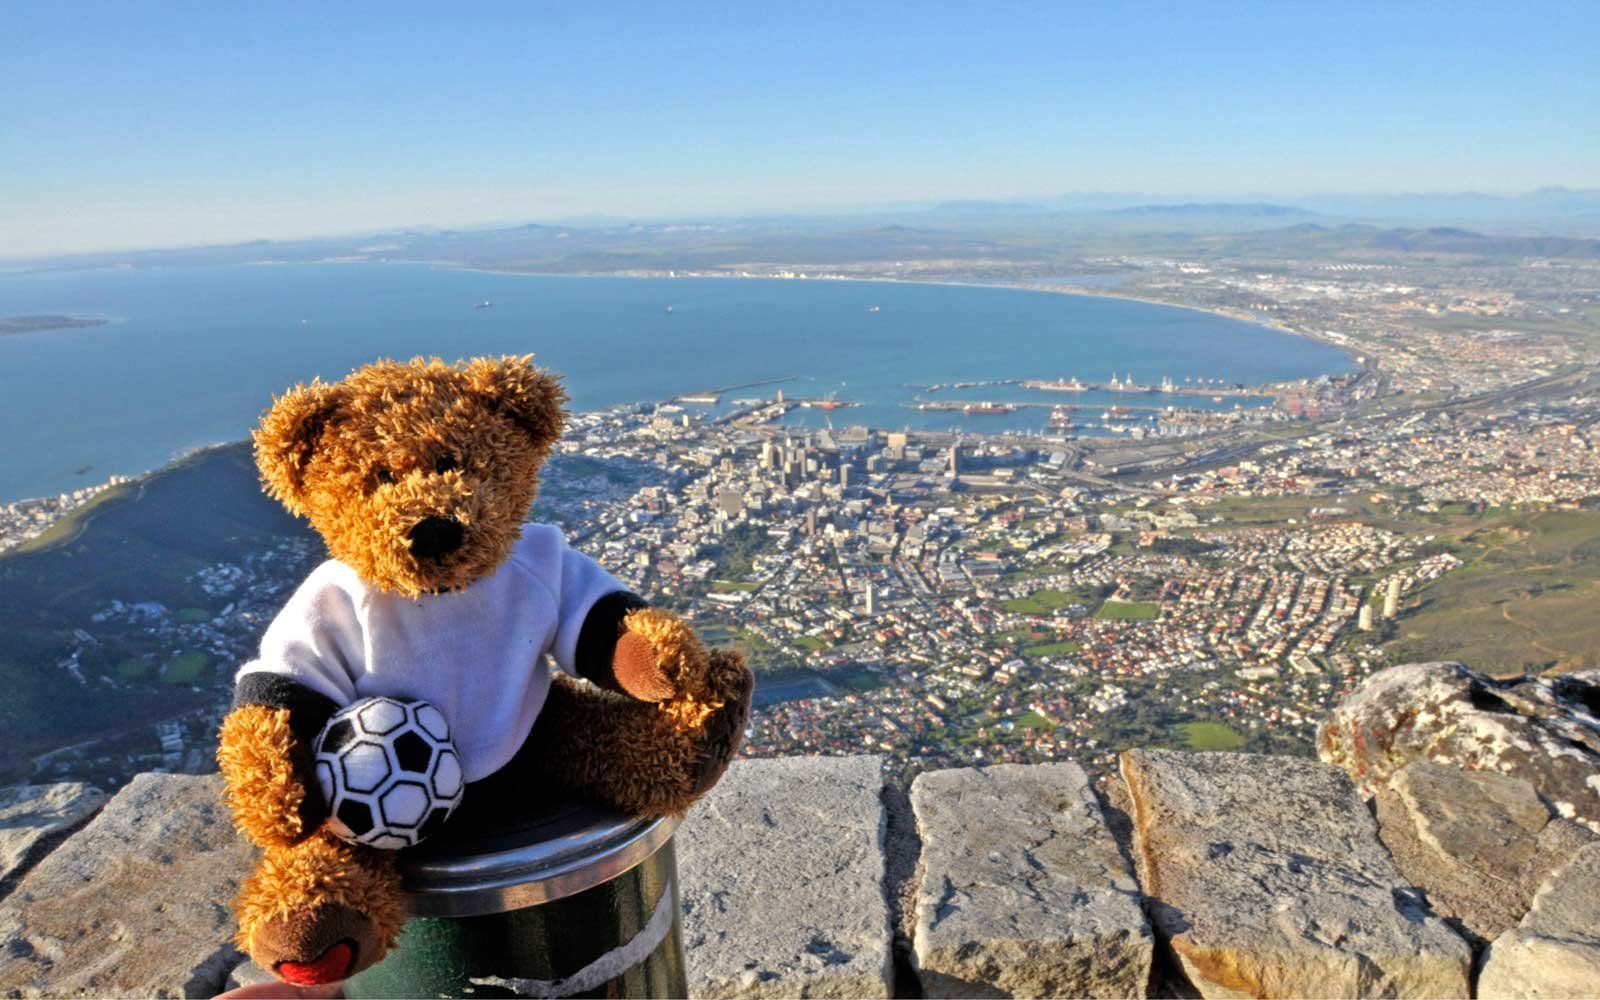 Traveling teddy bear in South Africa